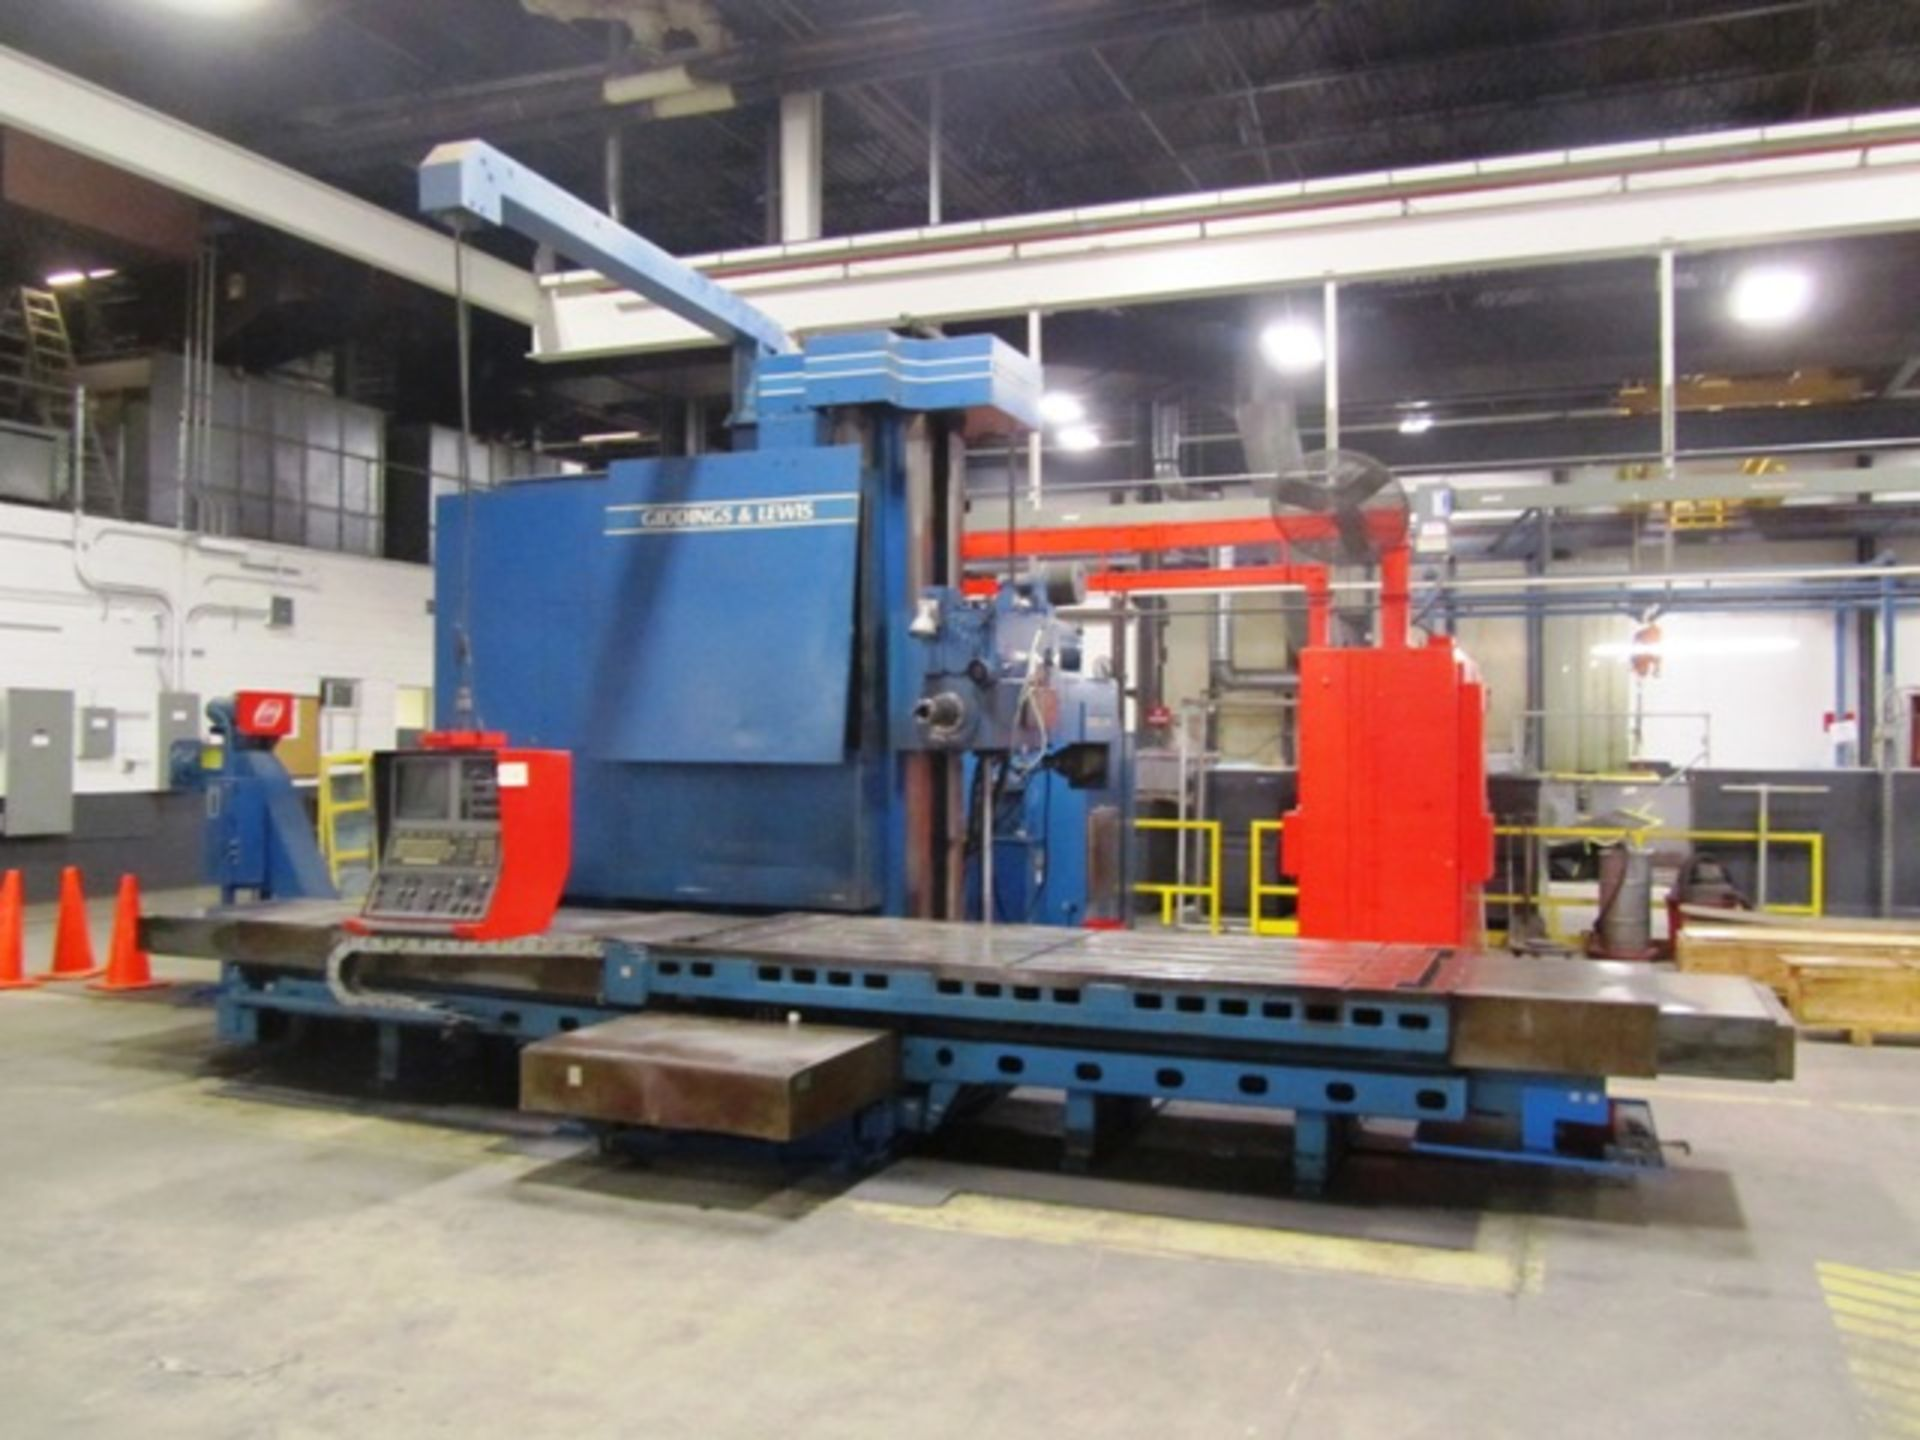 Giddings & Lewis Model 70-G5-T 5'' CNC Table Type Horizontal Boring Mill - Image 3 of 9